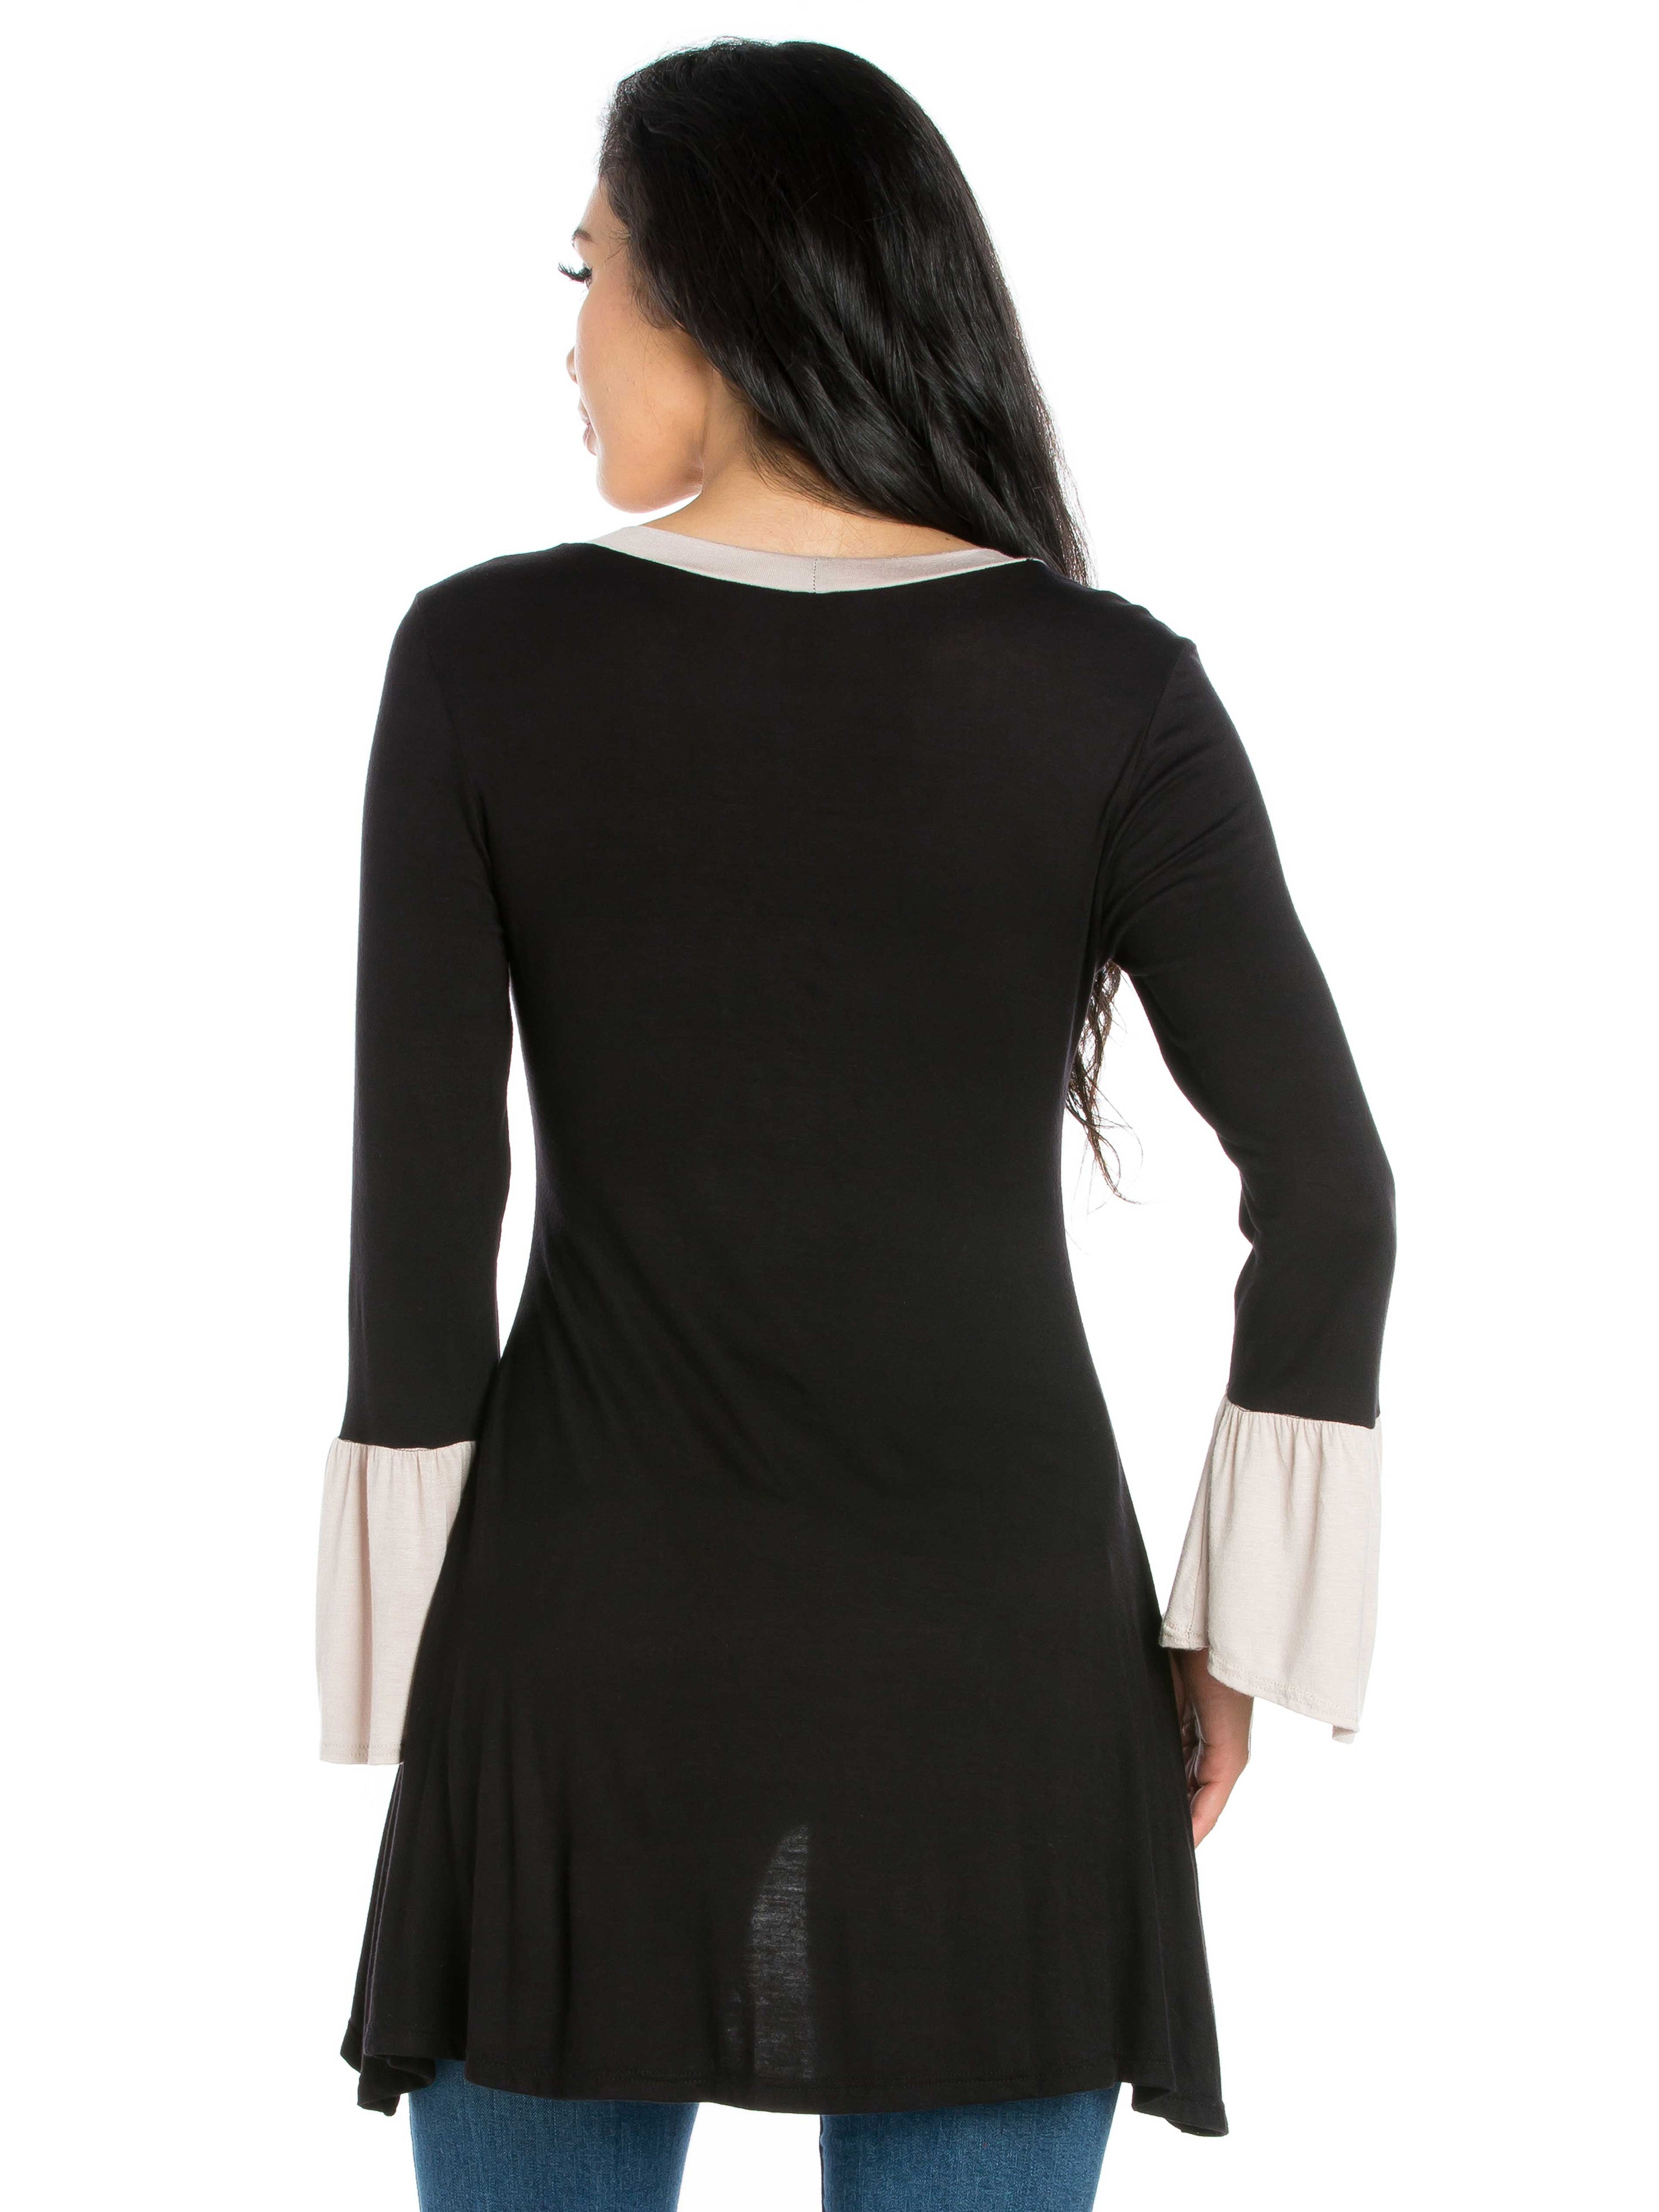 24seven Comfort Apparel Black and Beige Bell Sleeve Hi Low Tunic Top